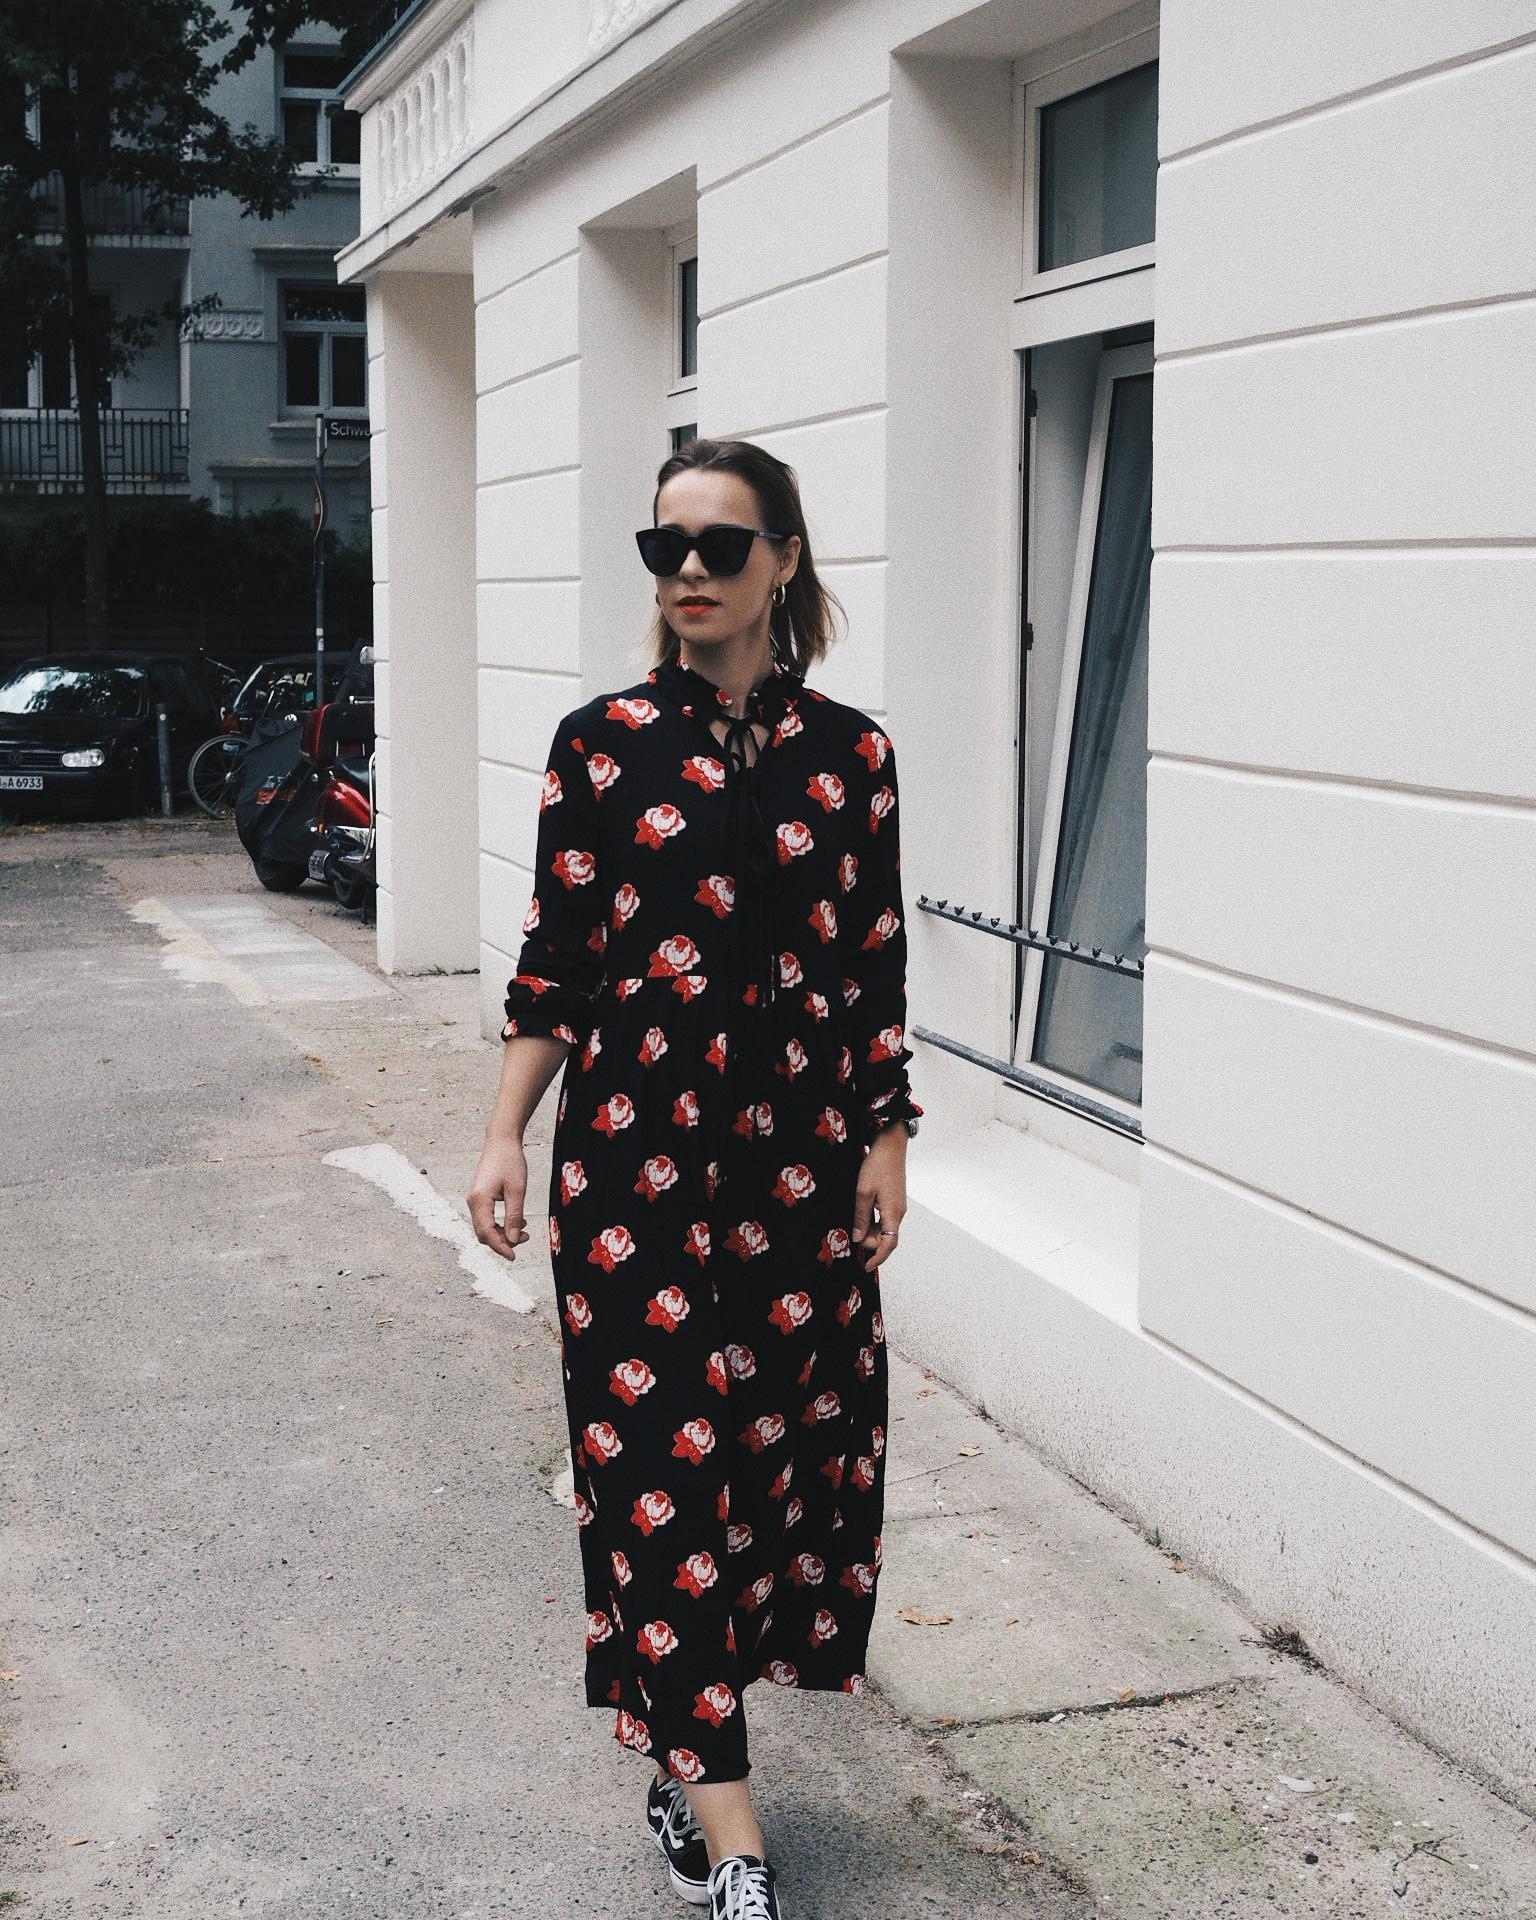 Flowerdress fashion streetstyle ganni summer summerdress fashioncrush  addb65b3 8606 48b8 b508 ca6092c49490